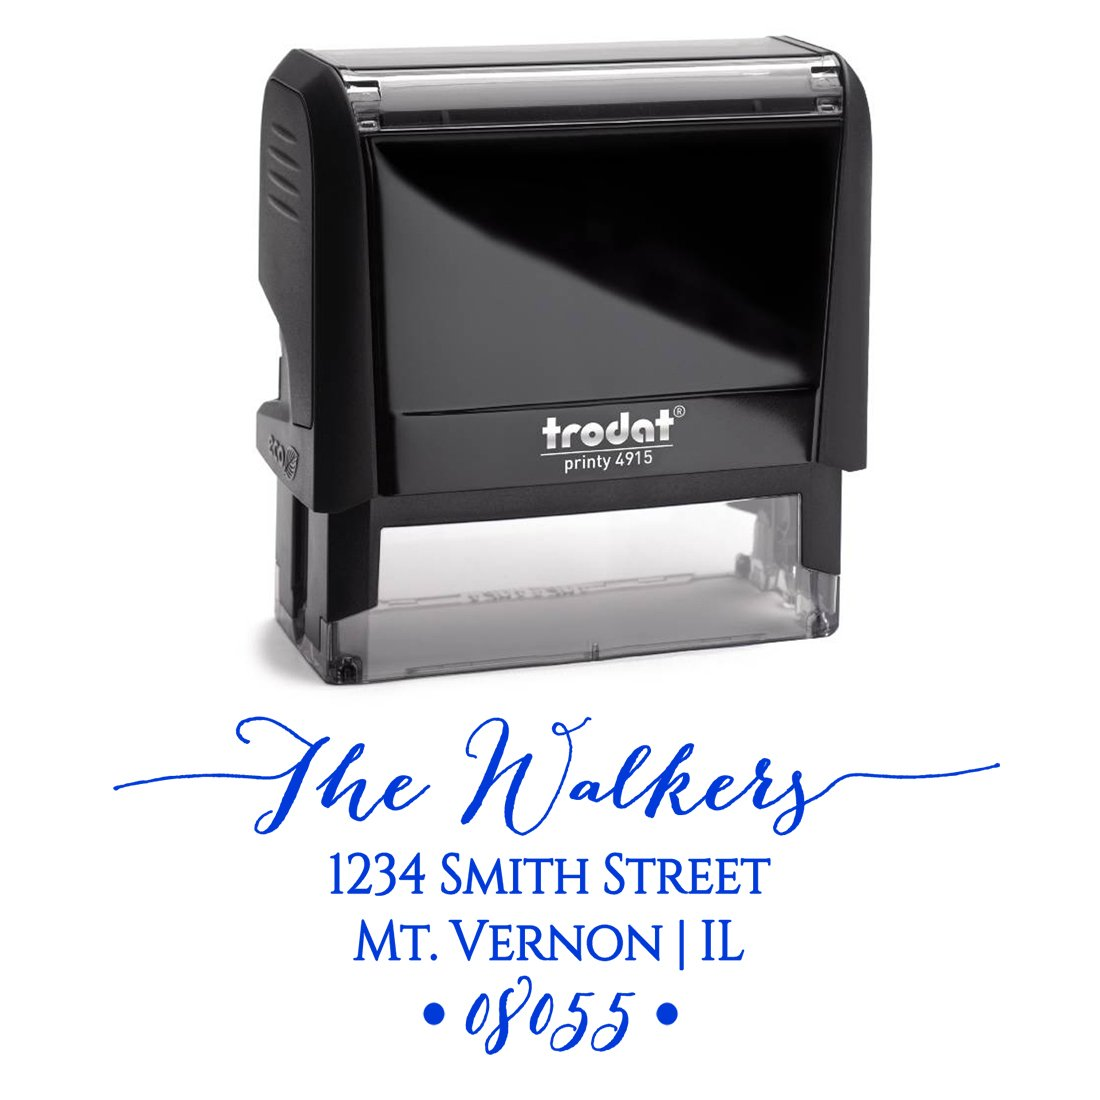 Amazon.com : Personalized Self Inking Stamp - Return Address Stamp ...